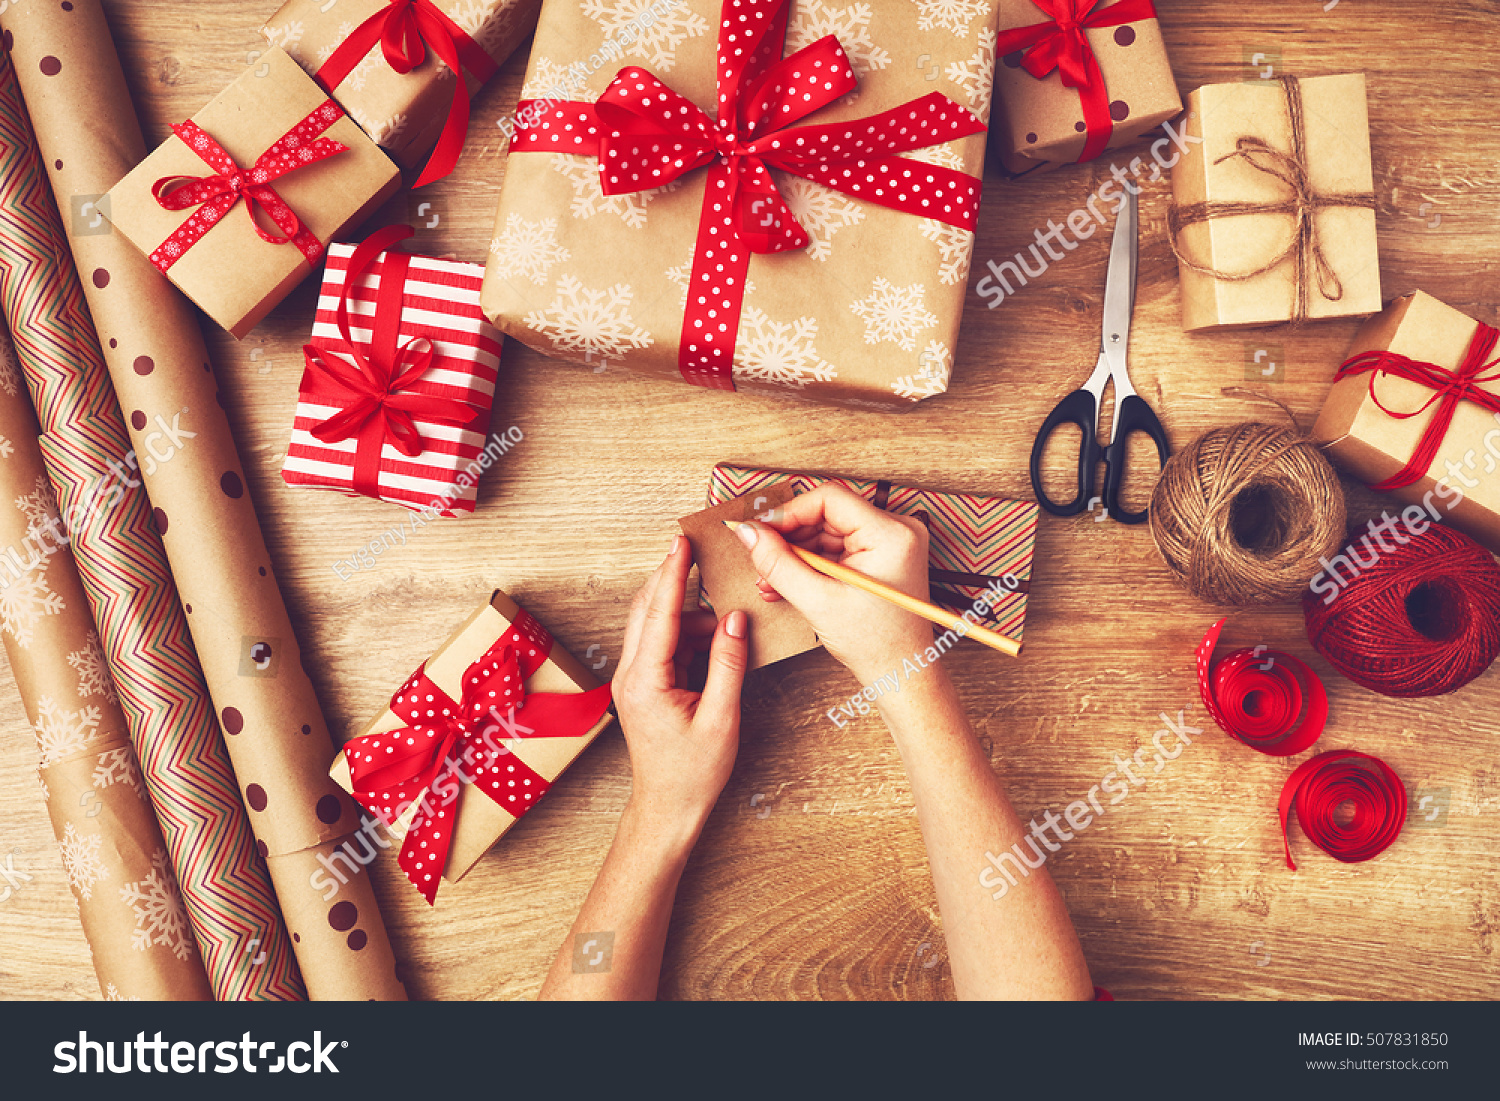 Hand Woman Packs Boxes Christmas Gifts Stock Photo (Edit Now ...